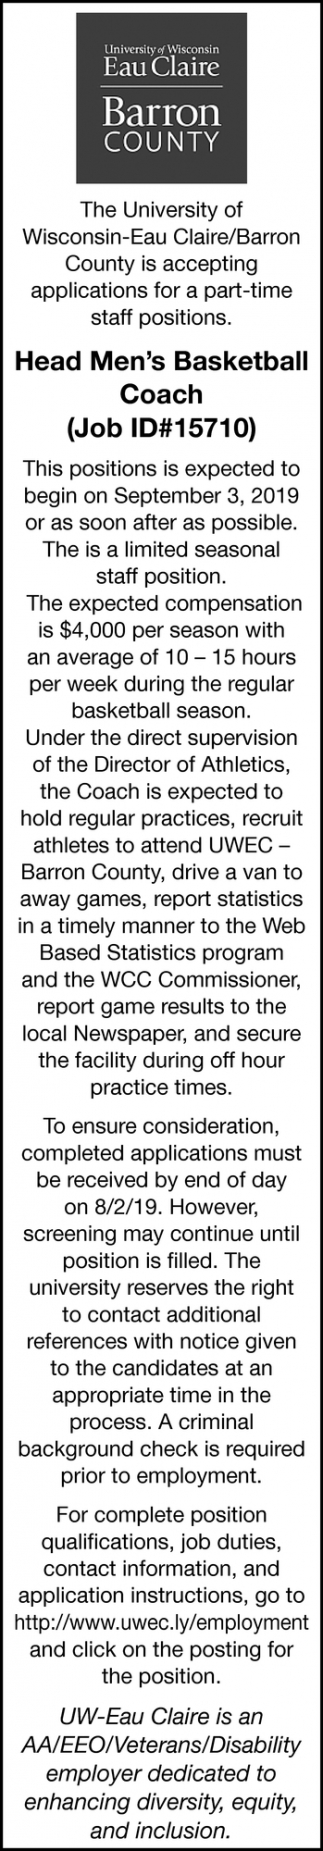 Head Men's Basketball Coach